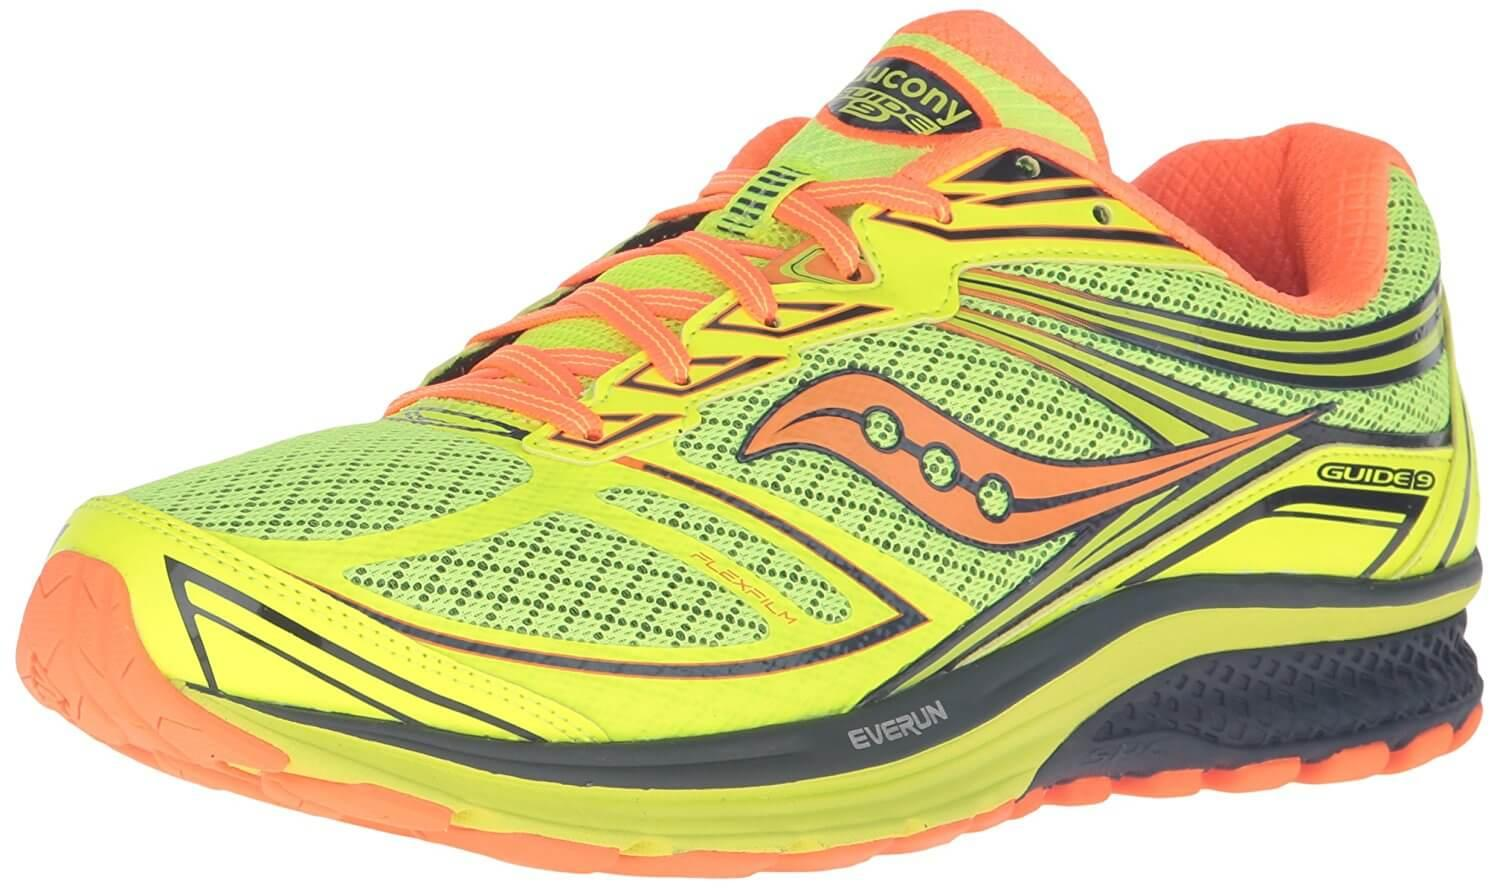 the Saucony Guide 9 is a stability shoe that features a good amount of cushioning